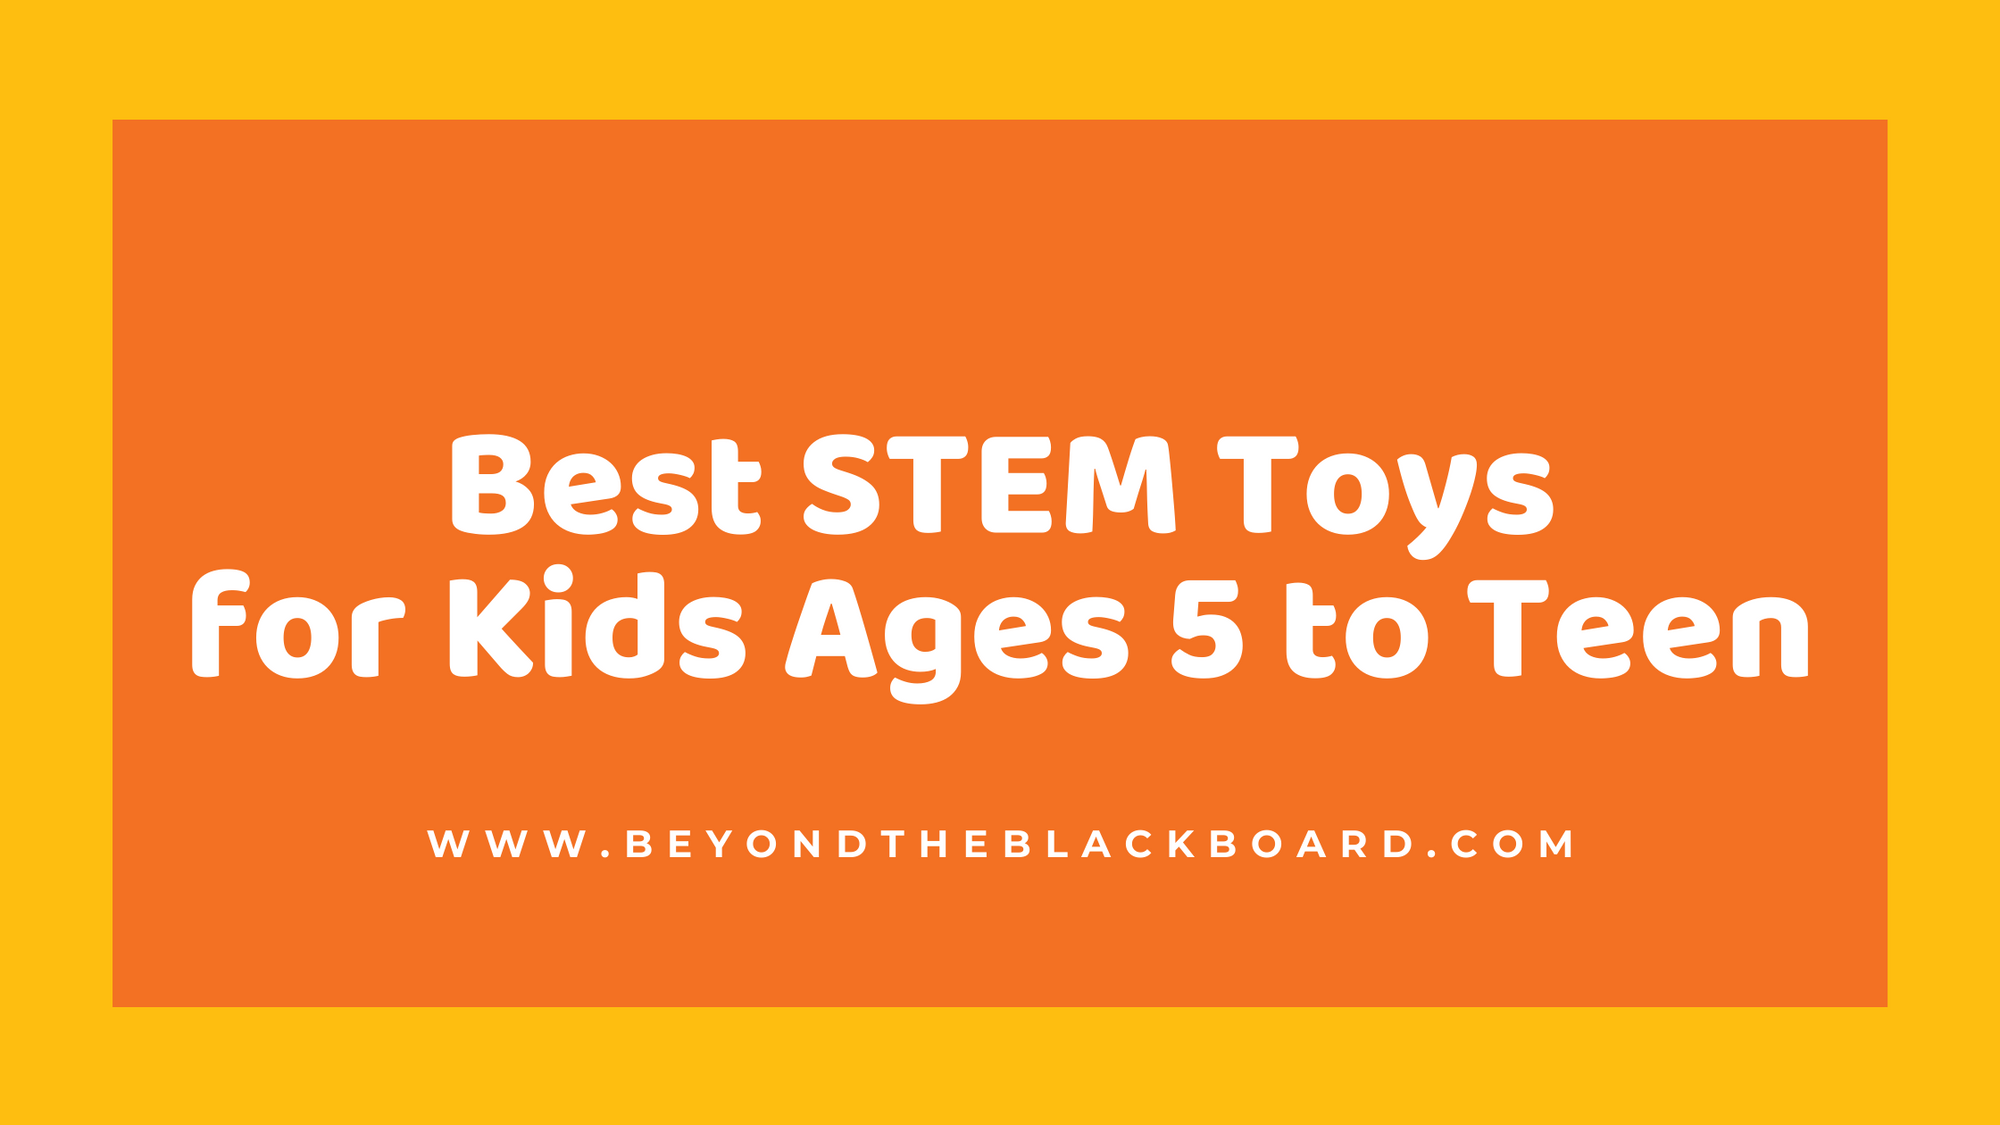 Best STEM Toys for Kids Ages 5 to Teen, www.beyondtheblackboard.com